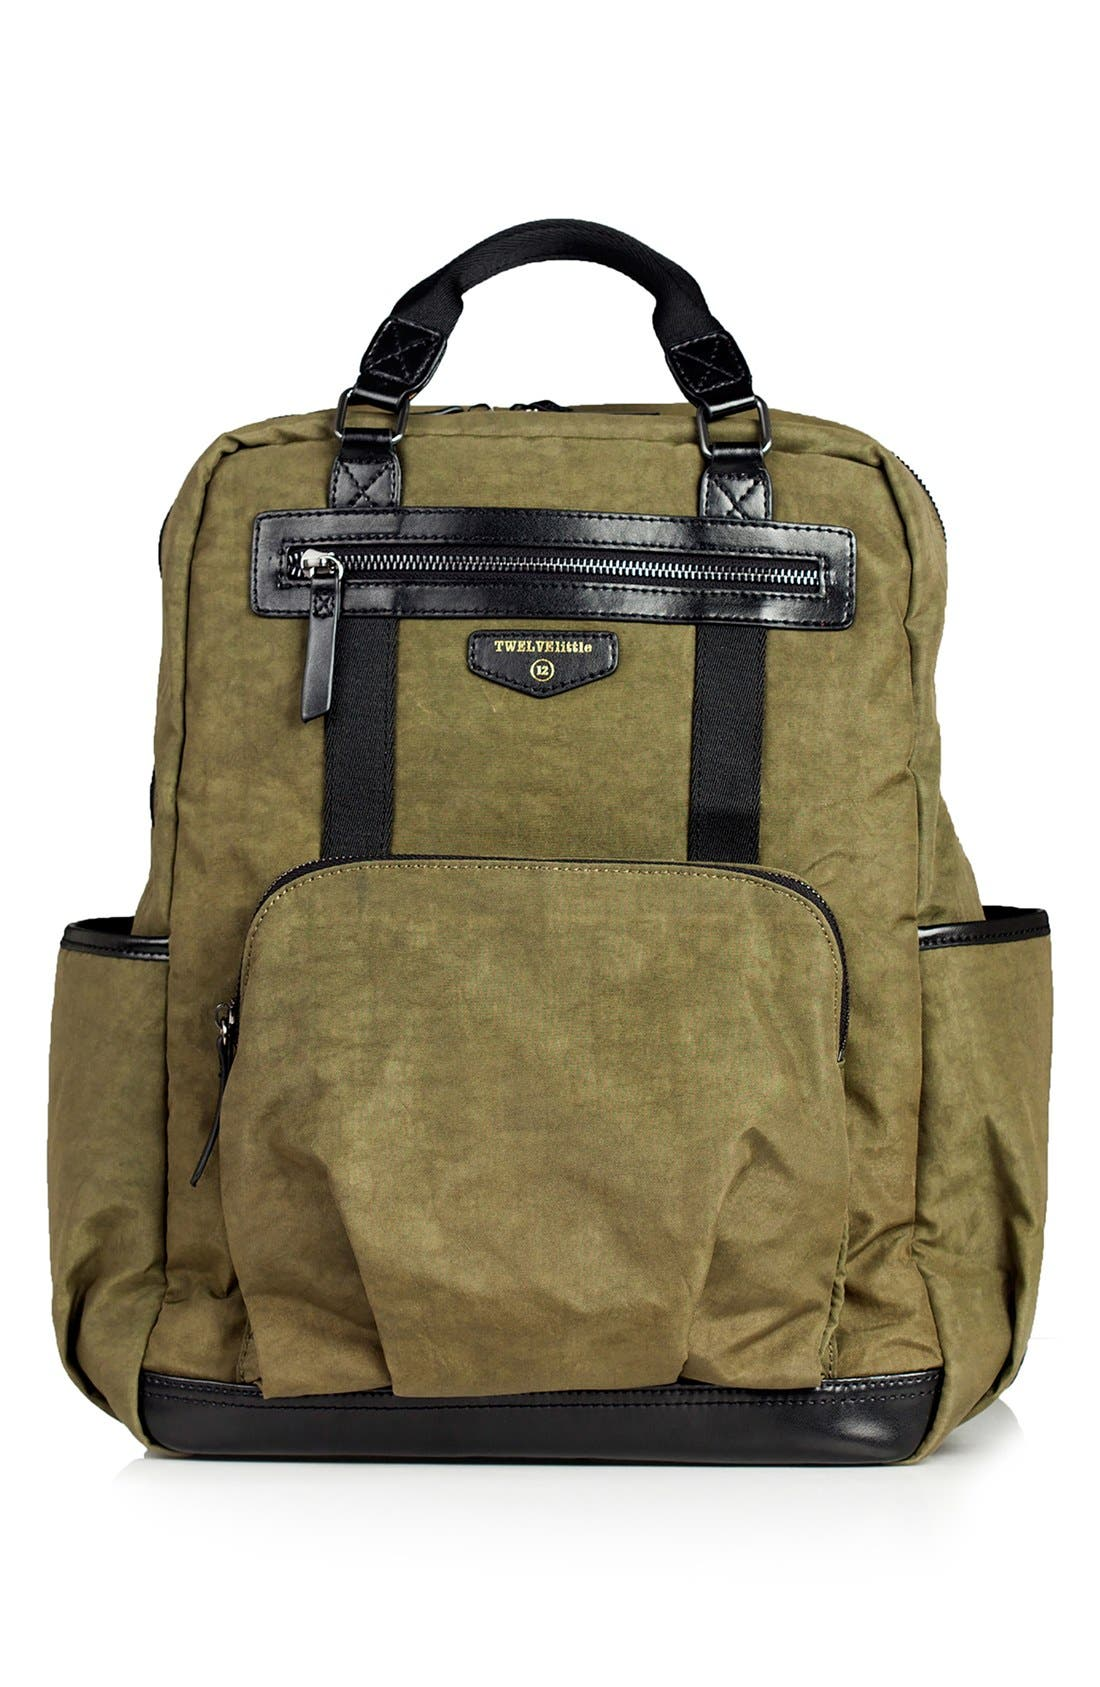 TWELVElittle 'Courage' Unisex Backpack Diaper Bag